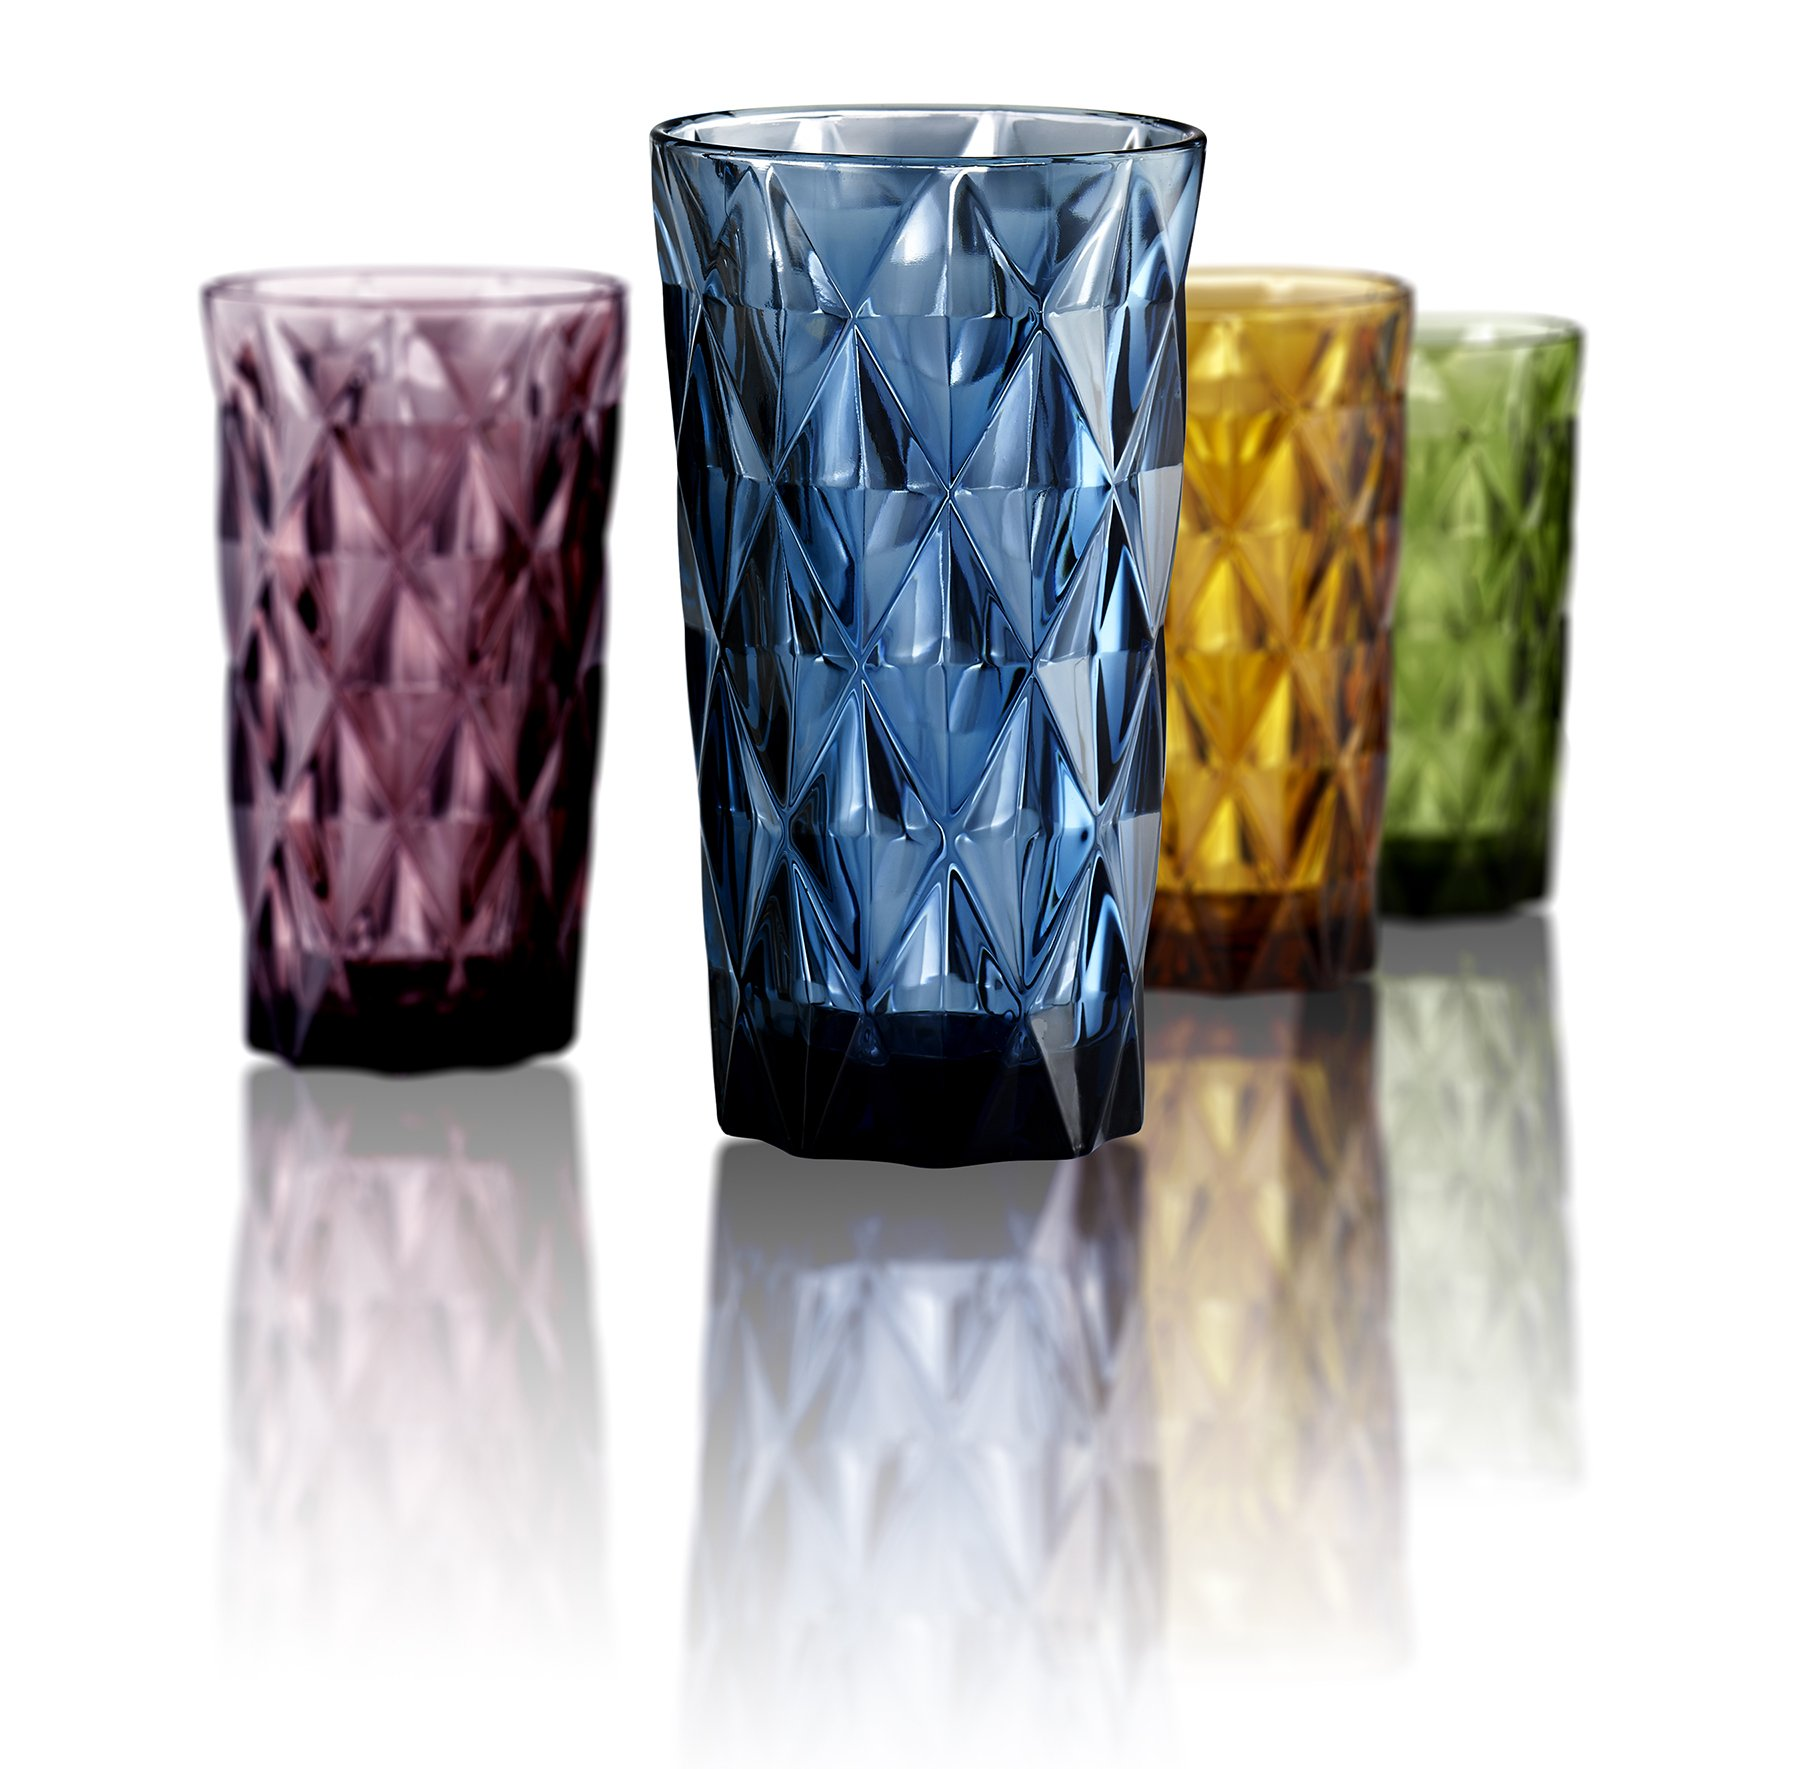 Artland High Gate 15 oz Assorted Colors Highball in a Gift Box (Set of 4), Small, Glass